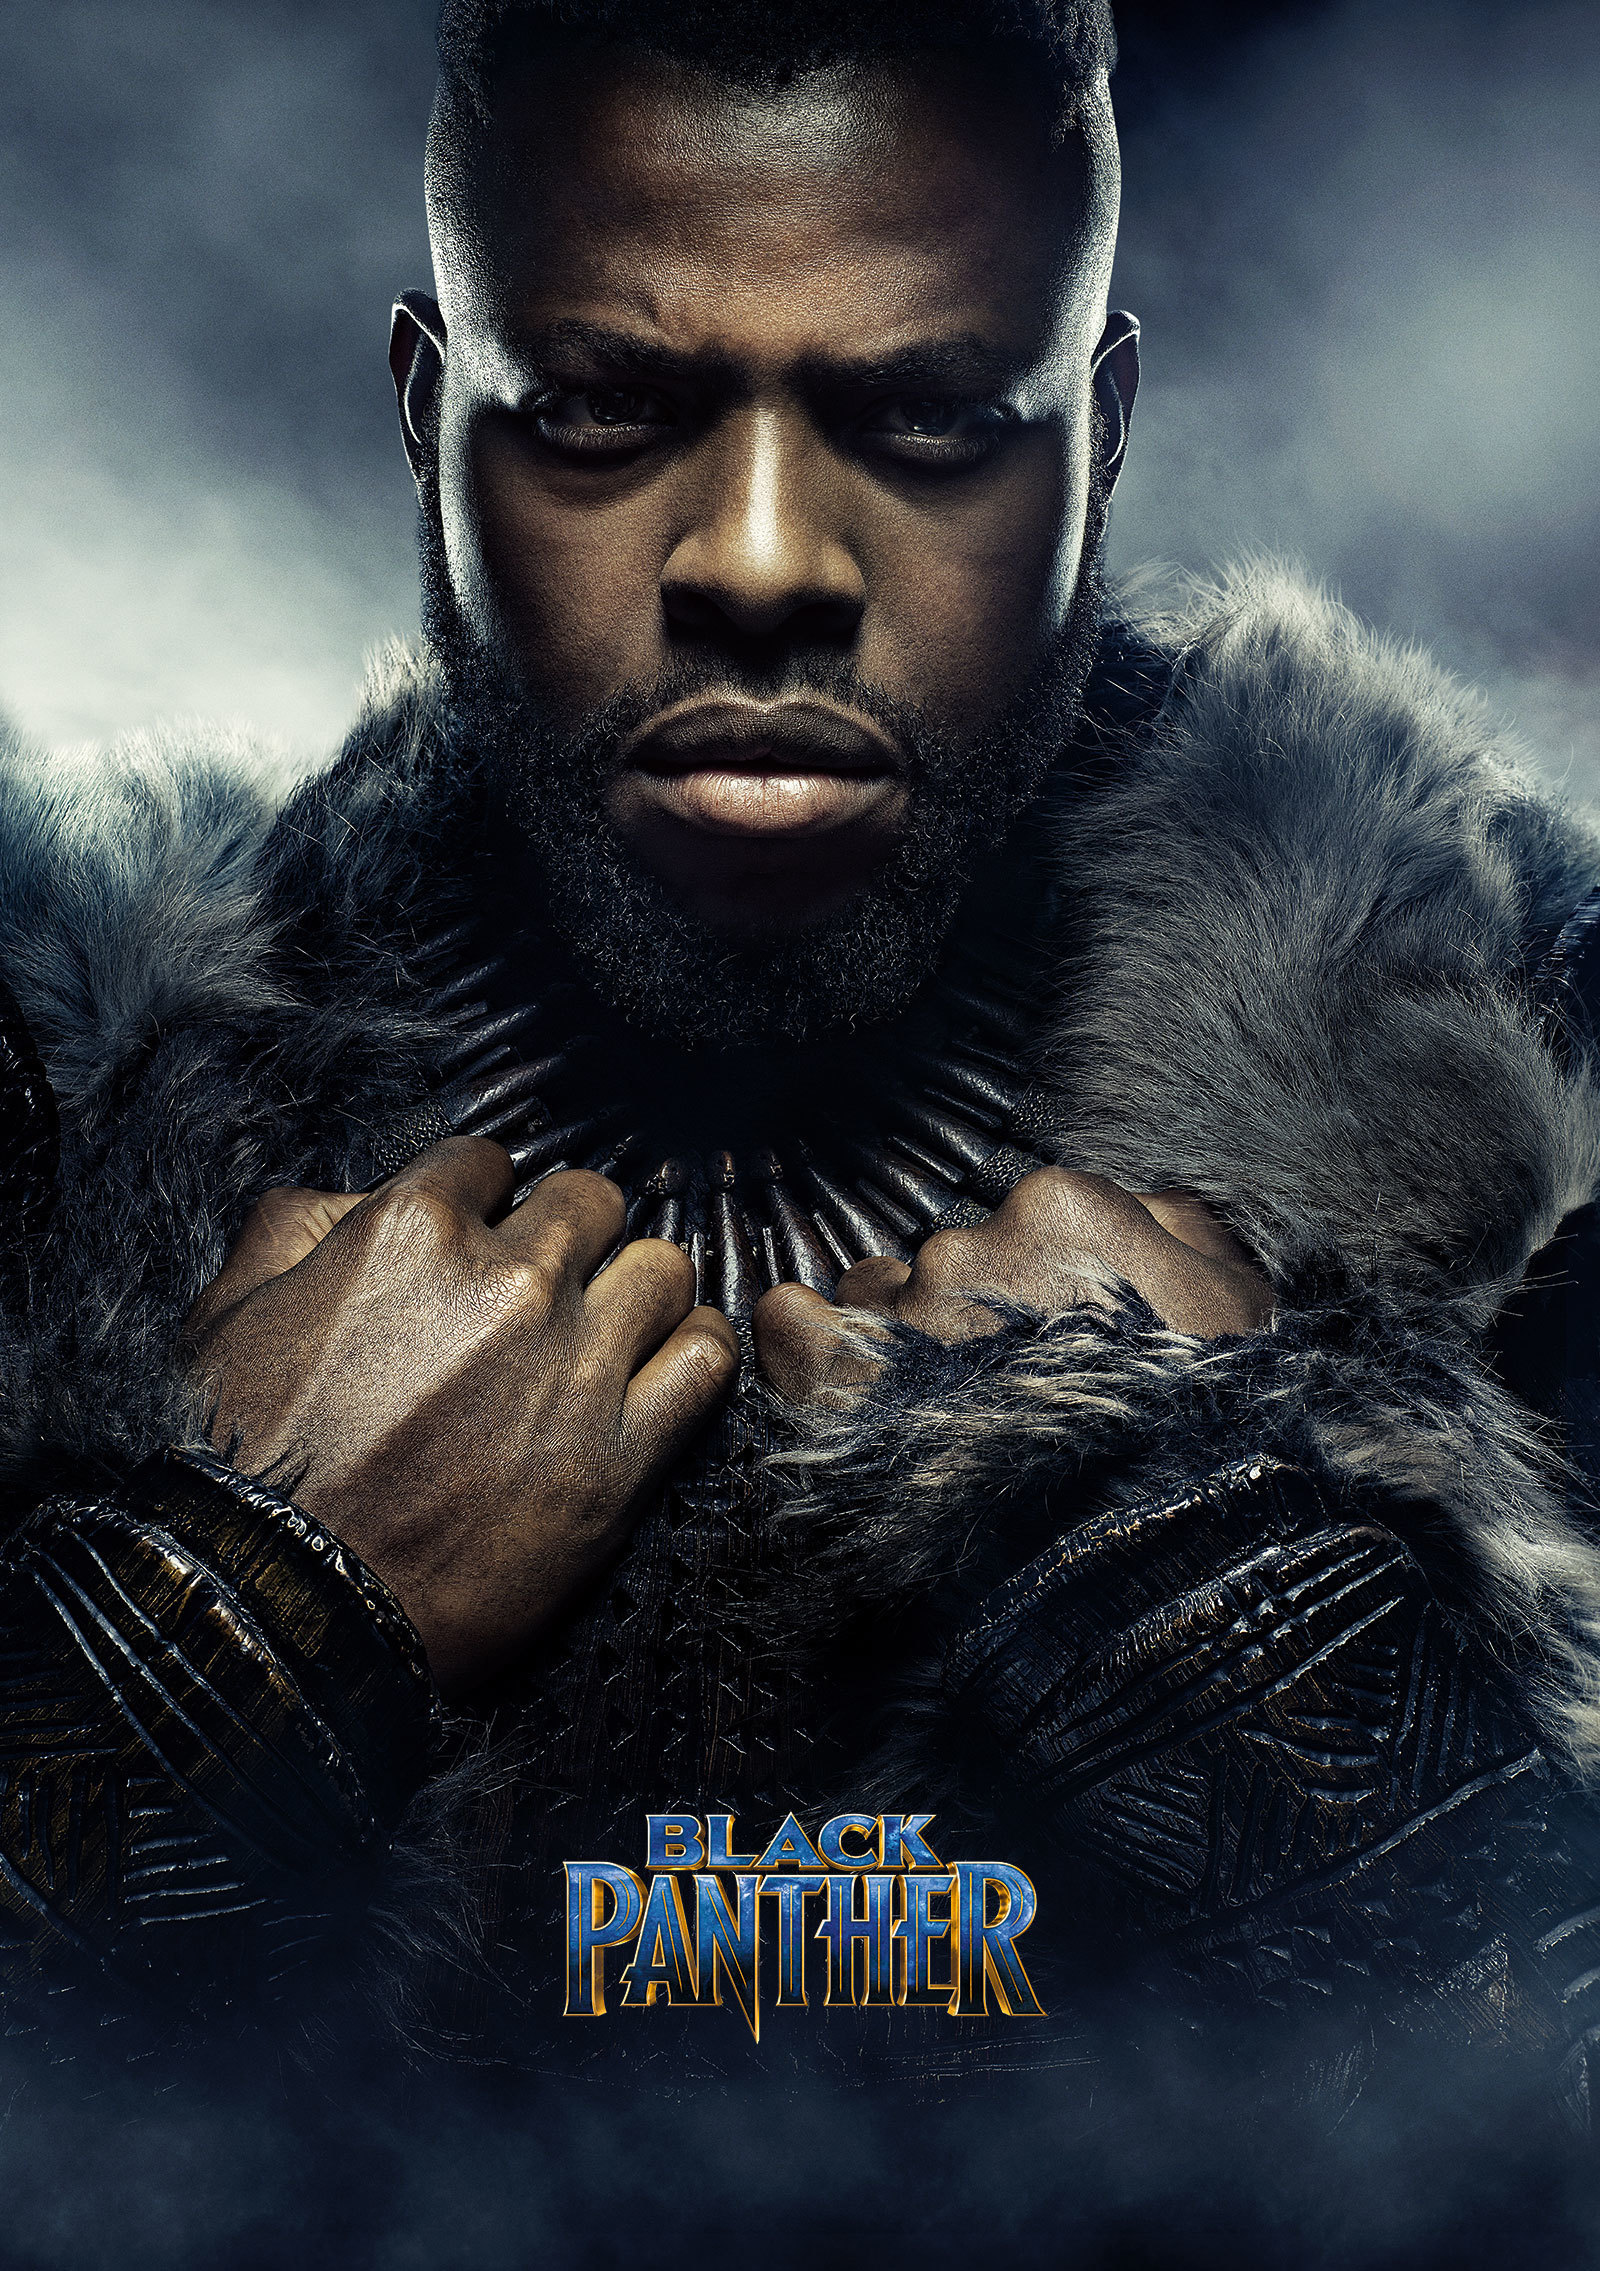 Black Panther - Characters - MBAKU